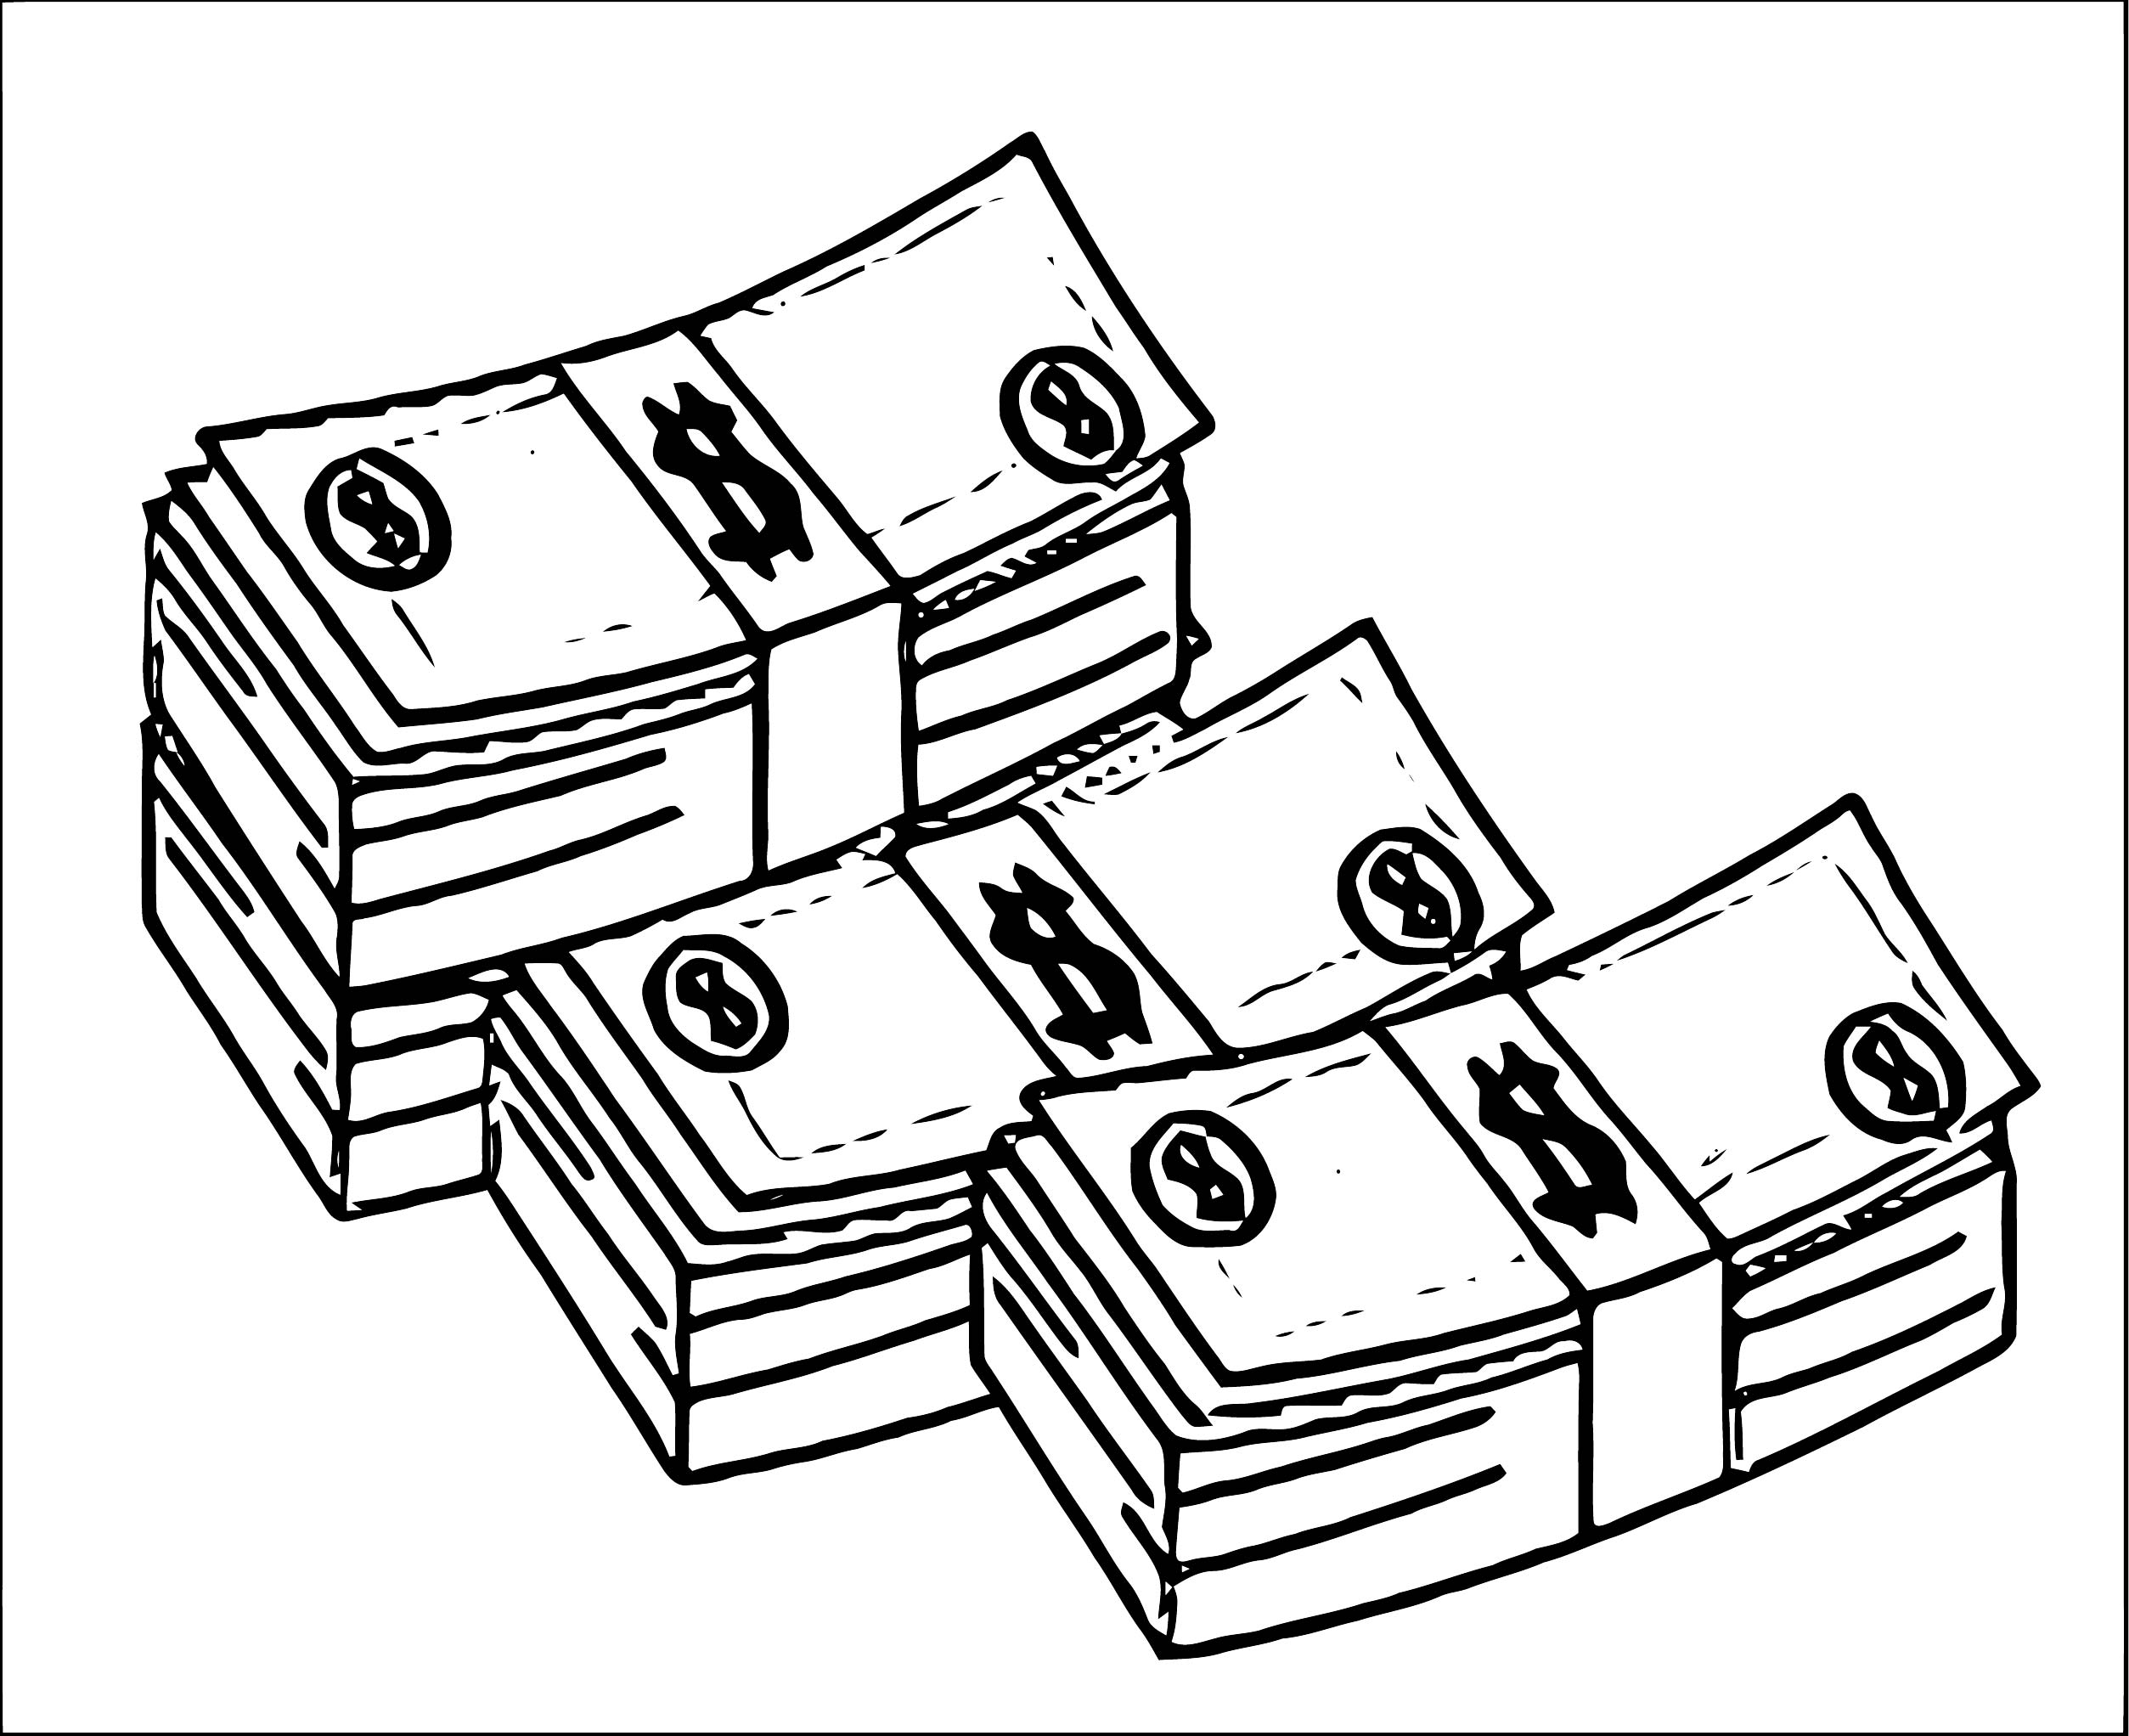 TN Banknotes Stack Of Money Coloring Page